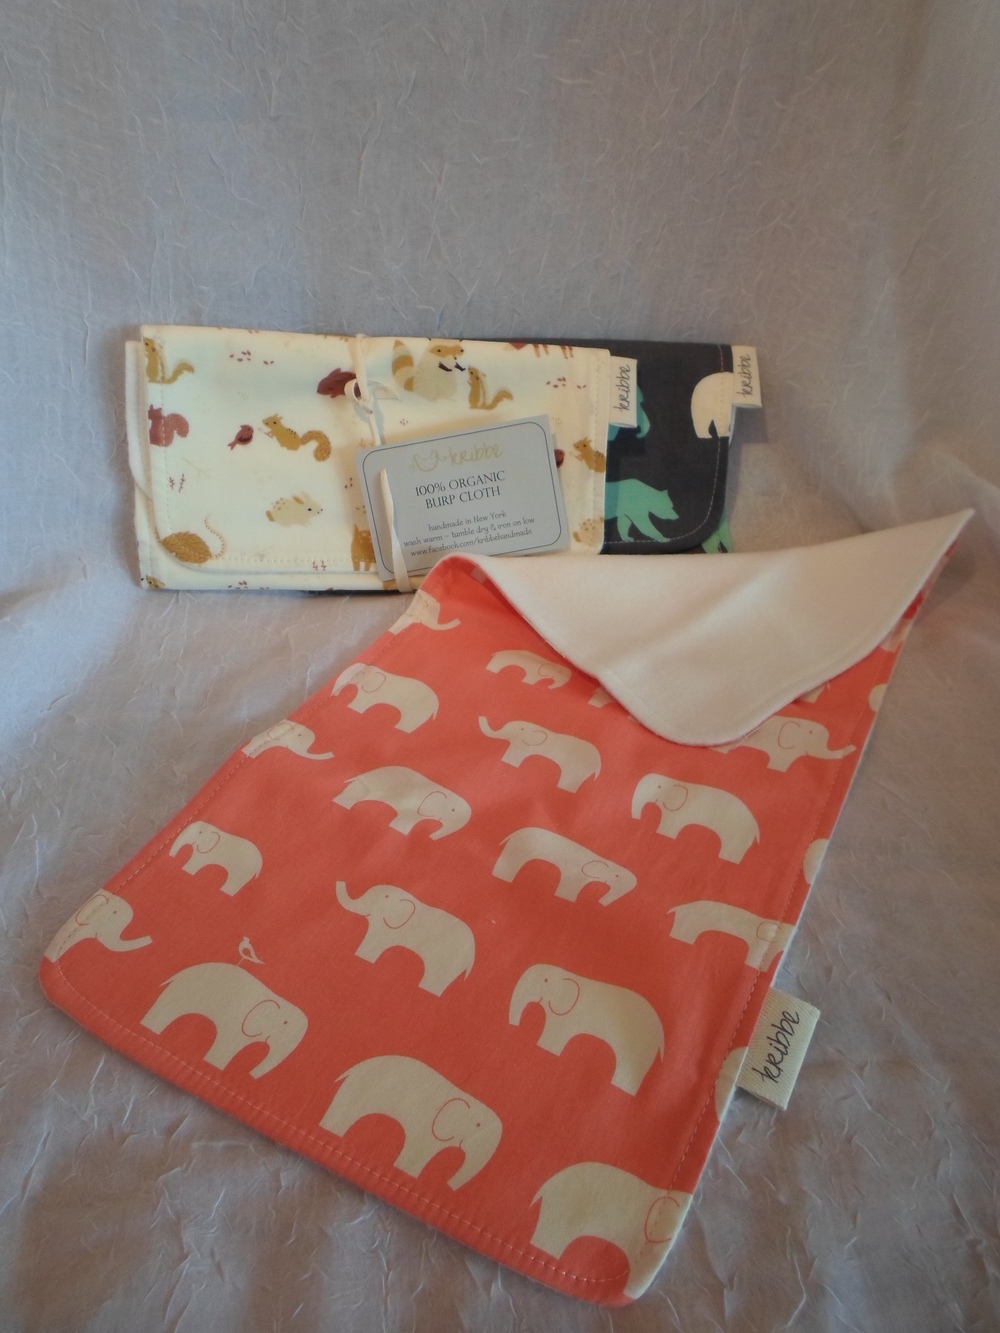 Kribbe Organic Cotton Burps set of 3 (your choice fabric)  Locally Handmade   $39.00    Wants 1